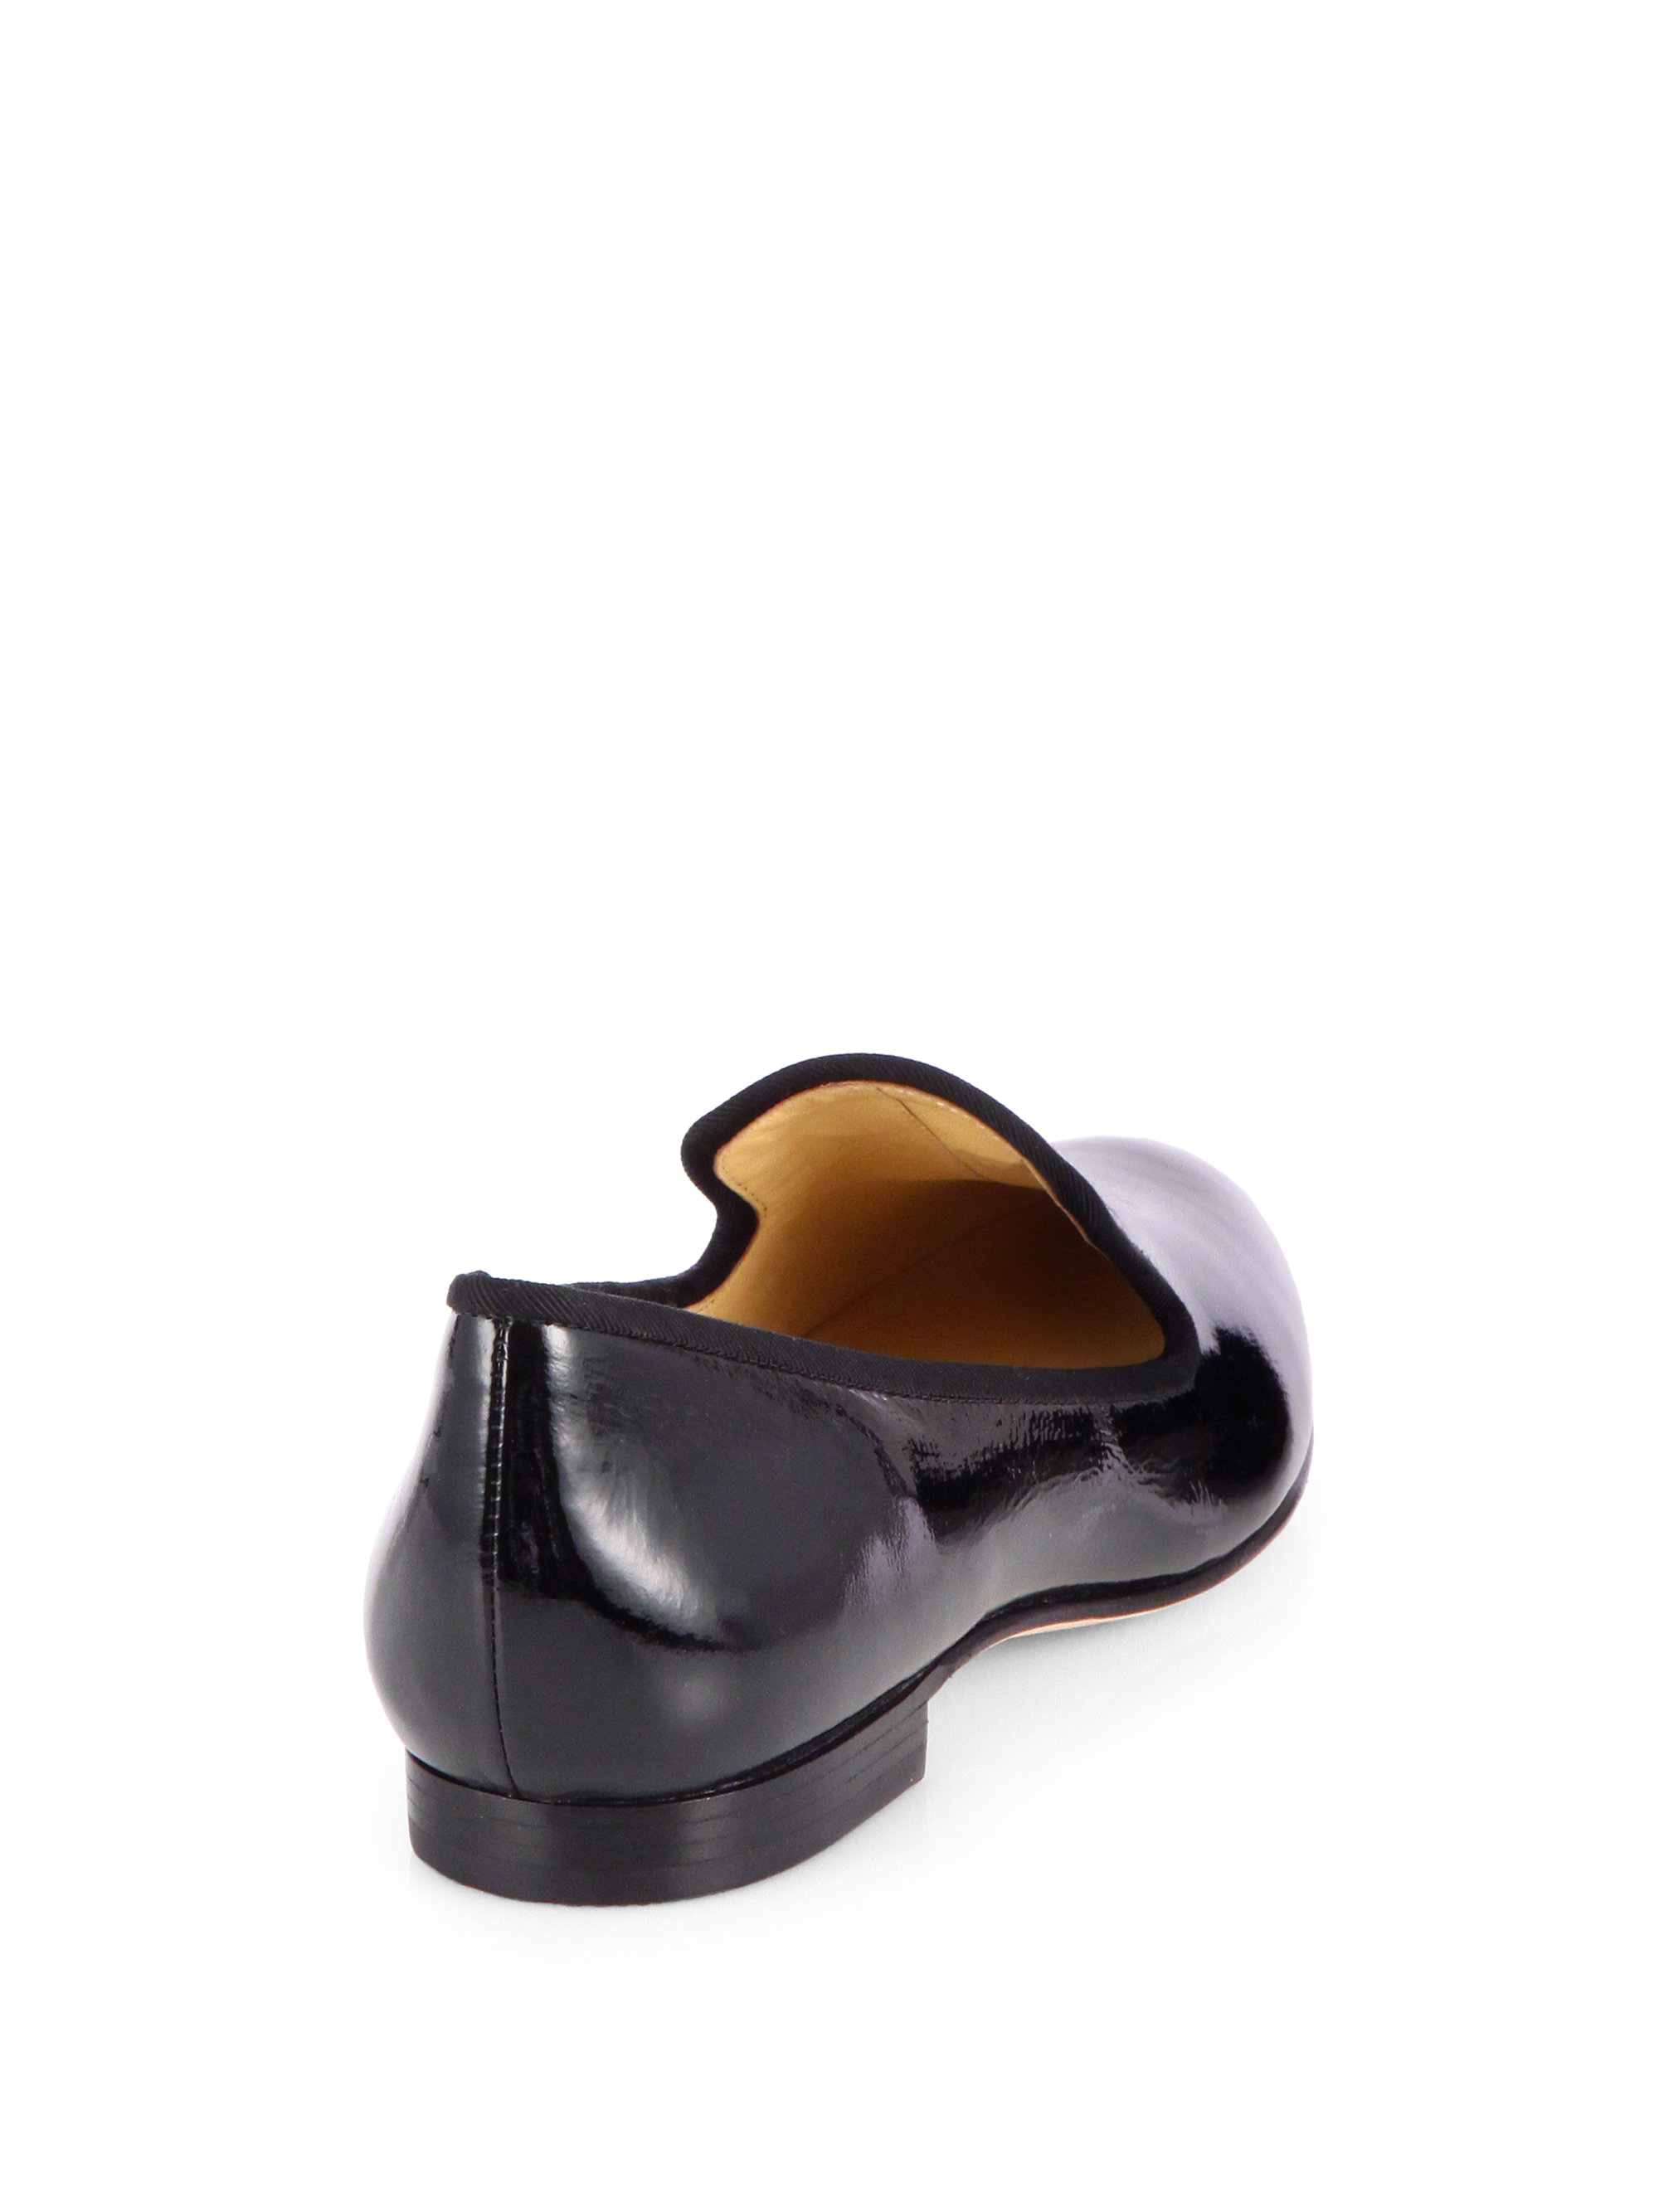 9ed6dabf0df Lyst cole haan sabrina patent leather smoking slippers in black jpg  2000x2667 Cole haan sabrina